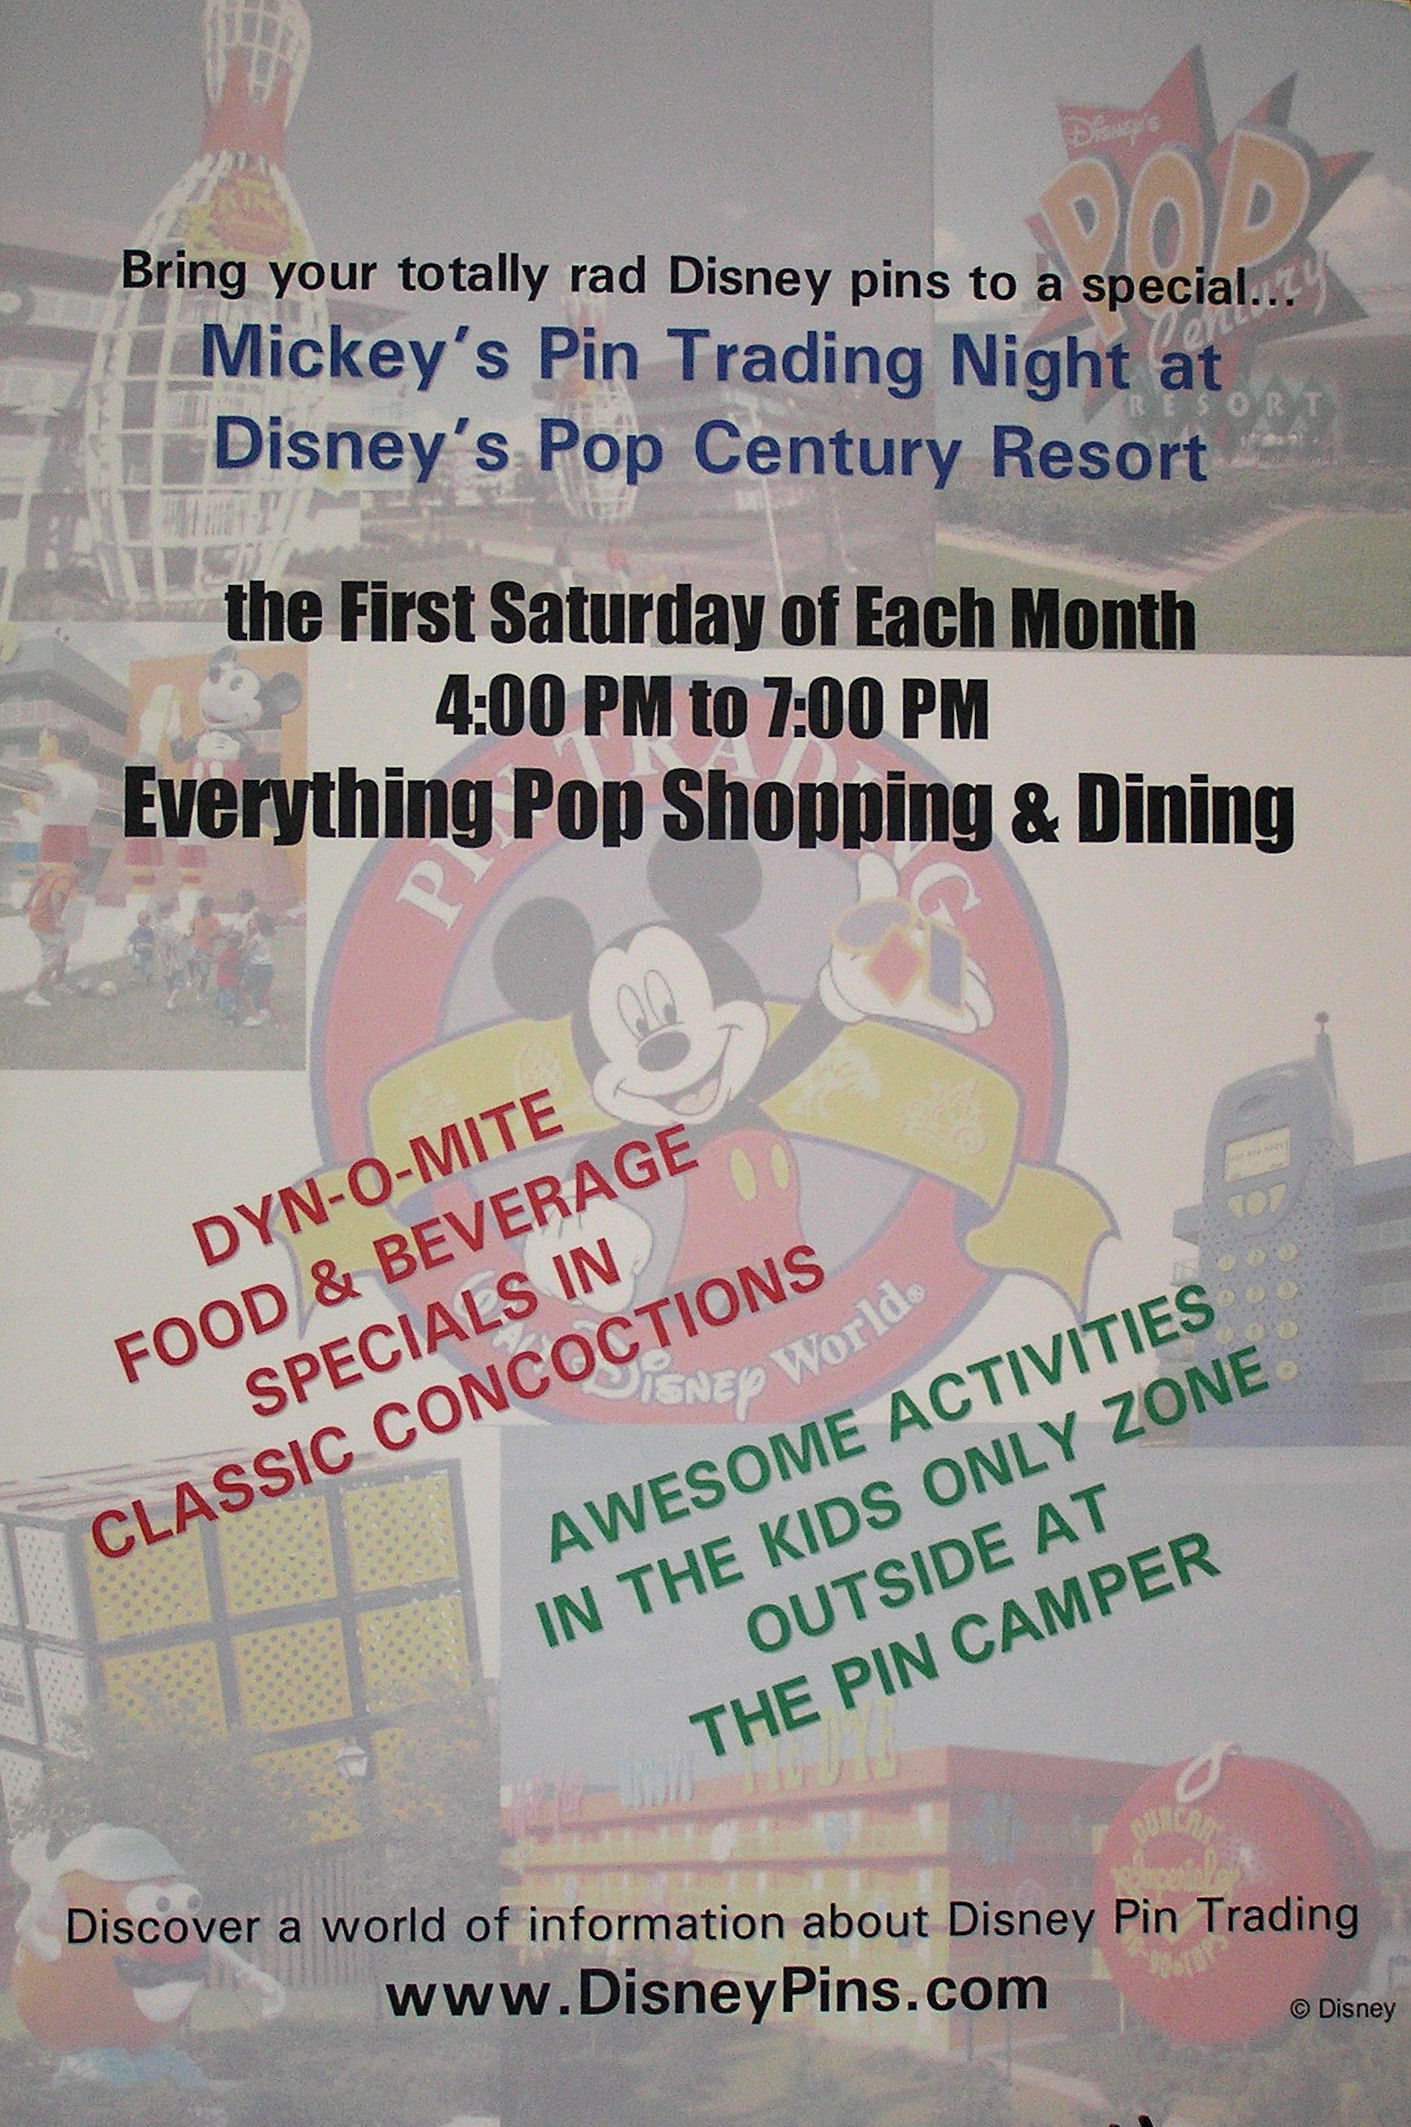 An ad for a pin trading event at Disney's Pop Century Resort at Disney World.